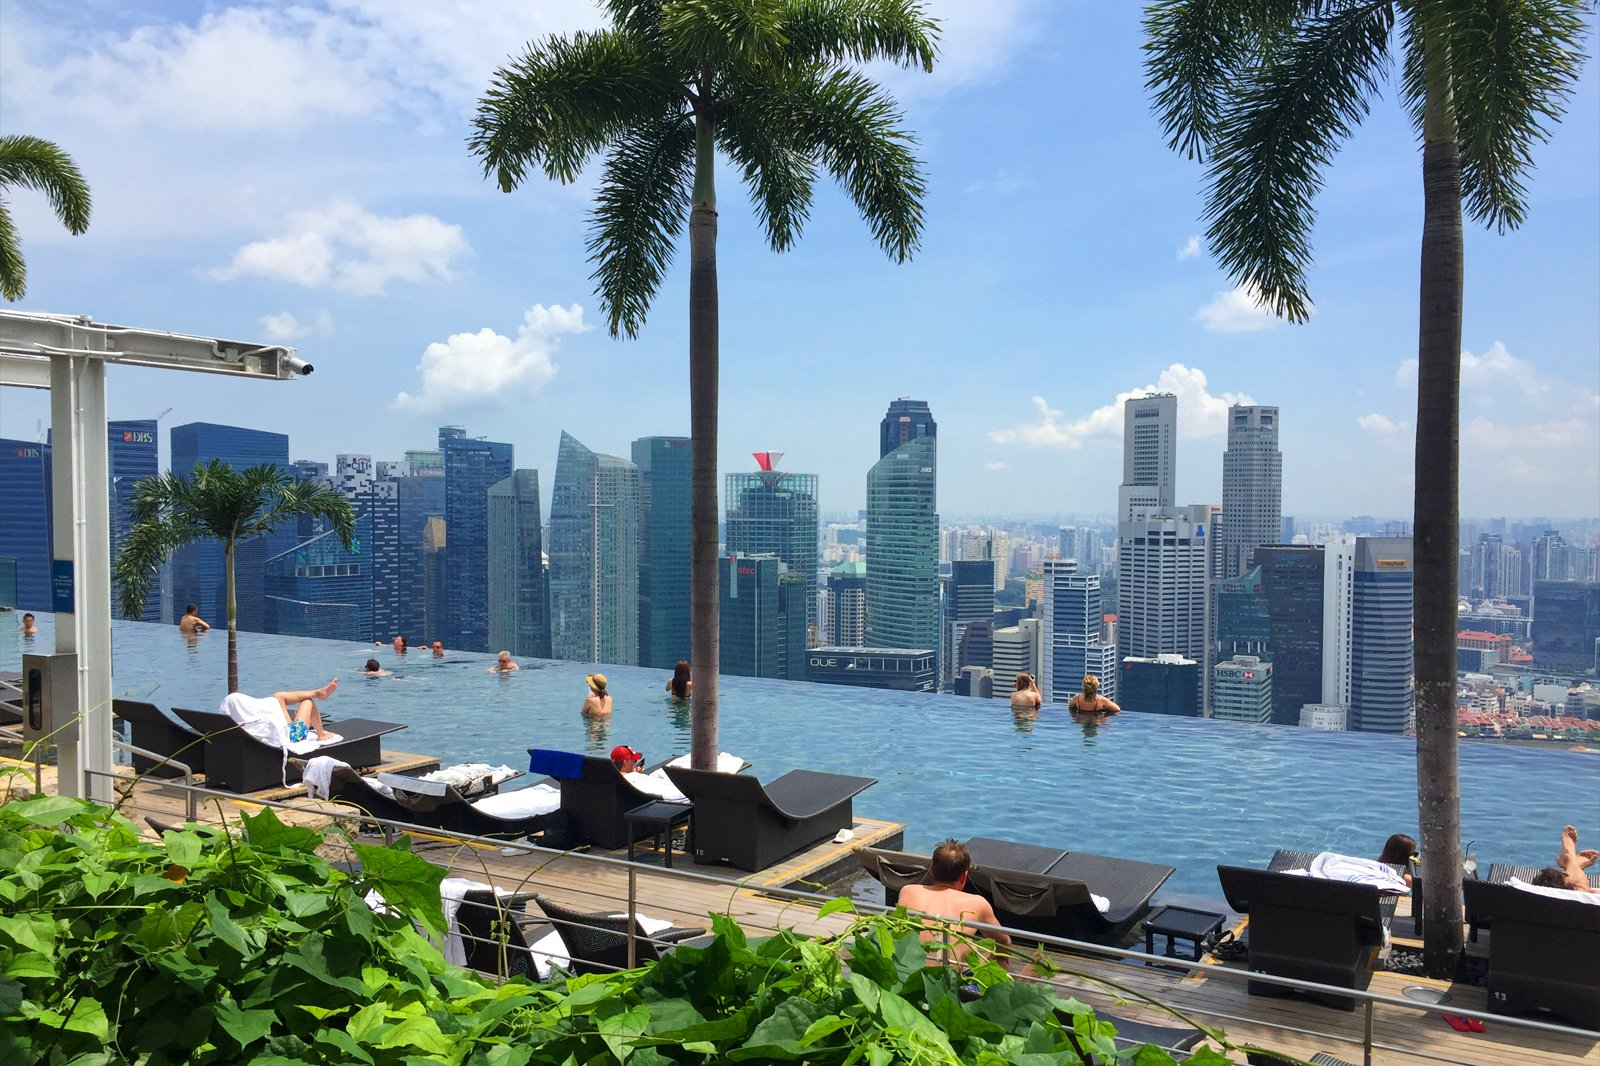 16 Best Things to Do in Marina Bay - What is Marina Bay